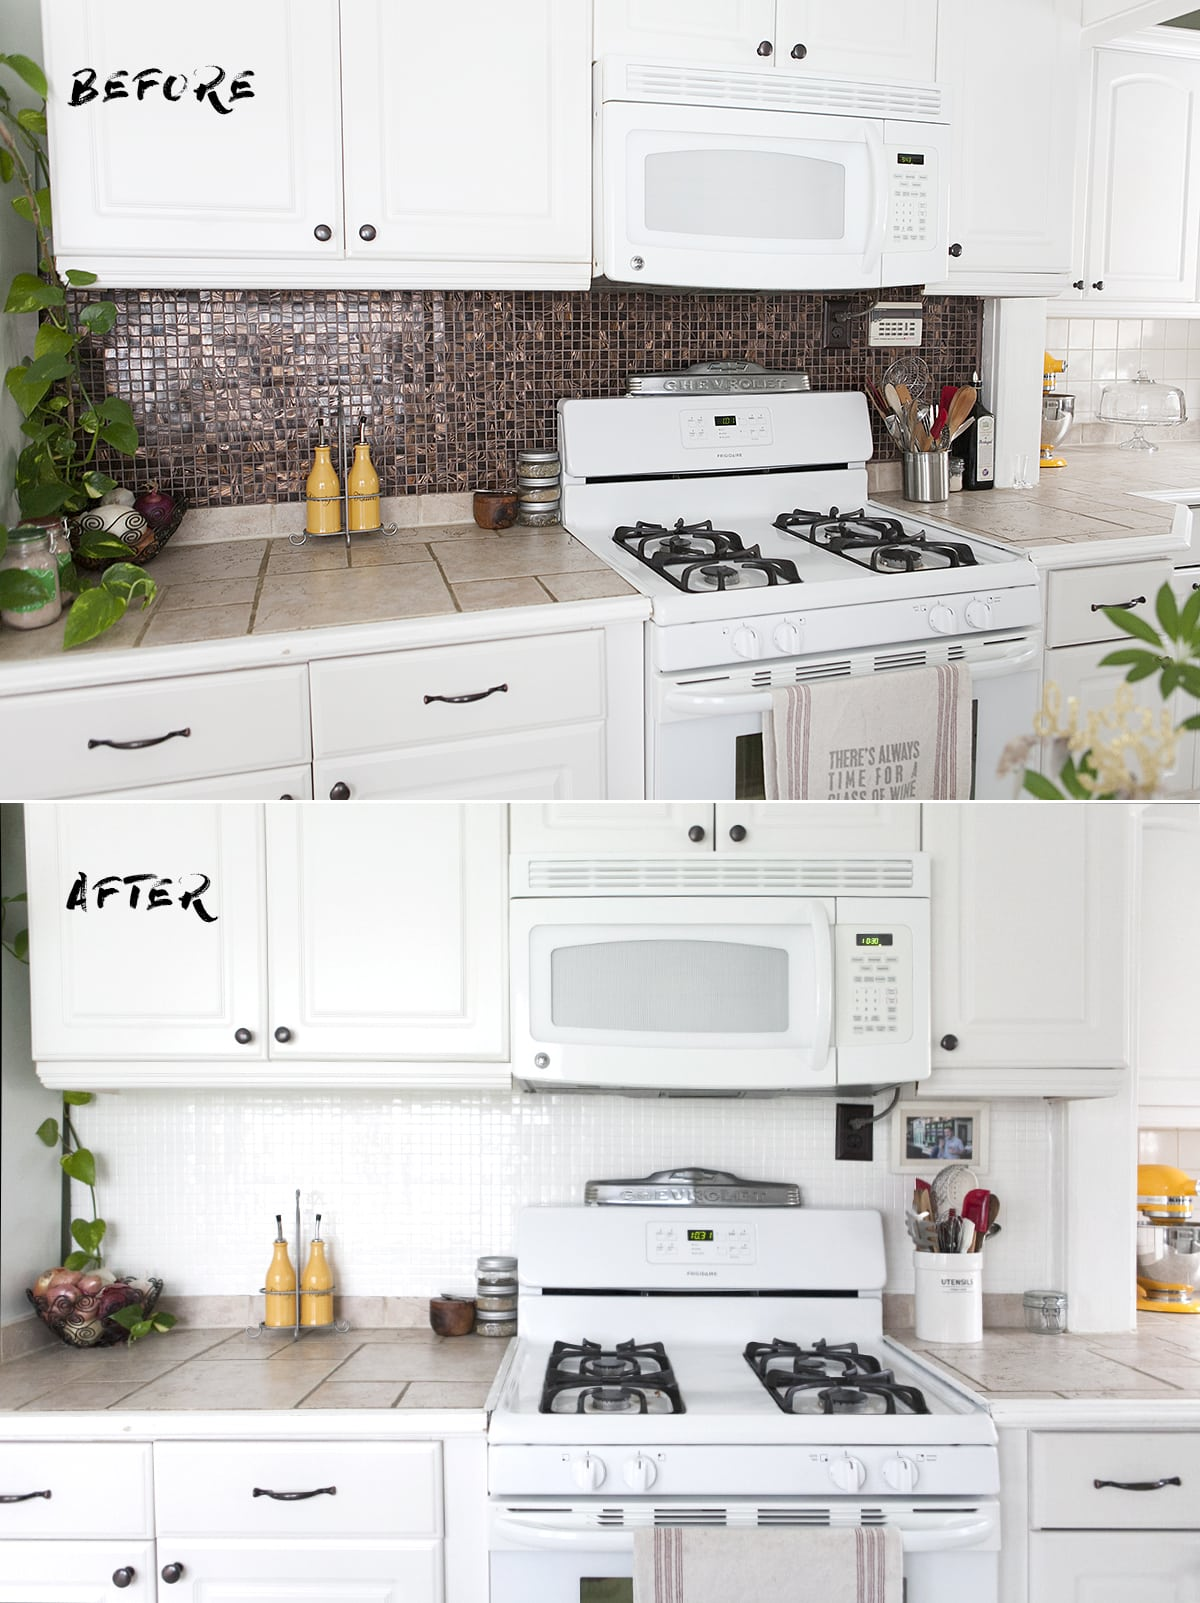 How To Paint A Tile Backsplash Jessica Brigham